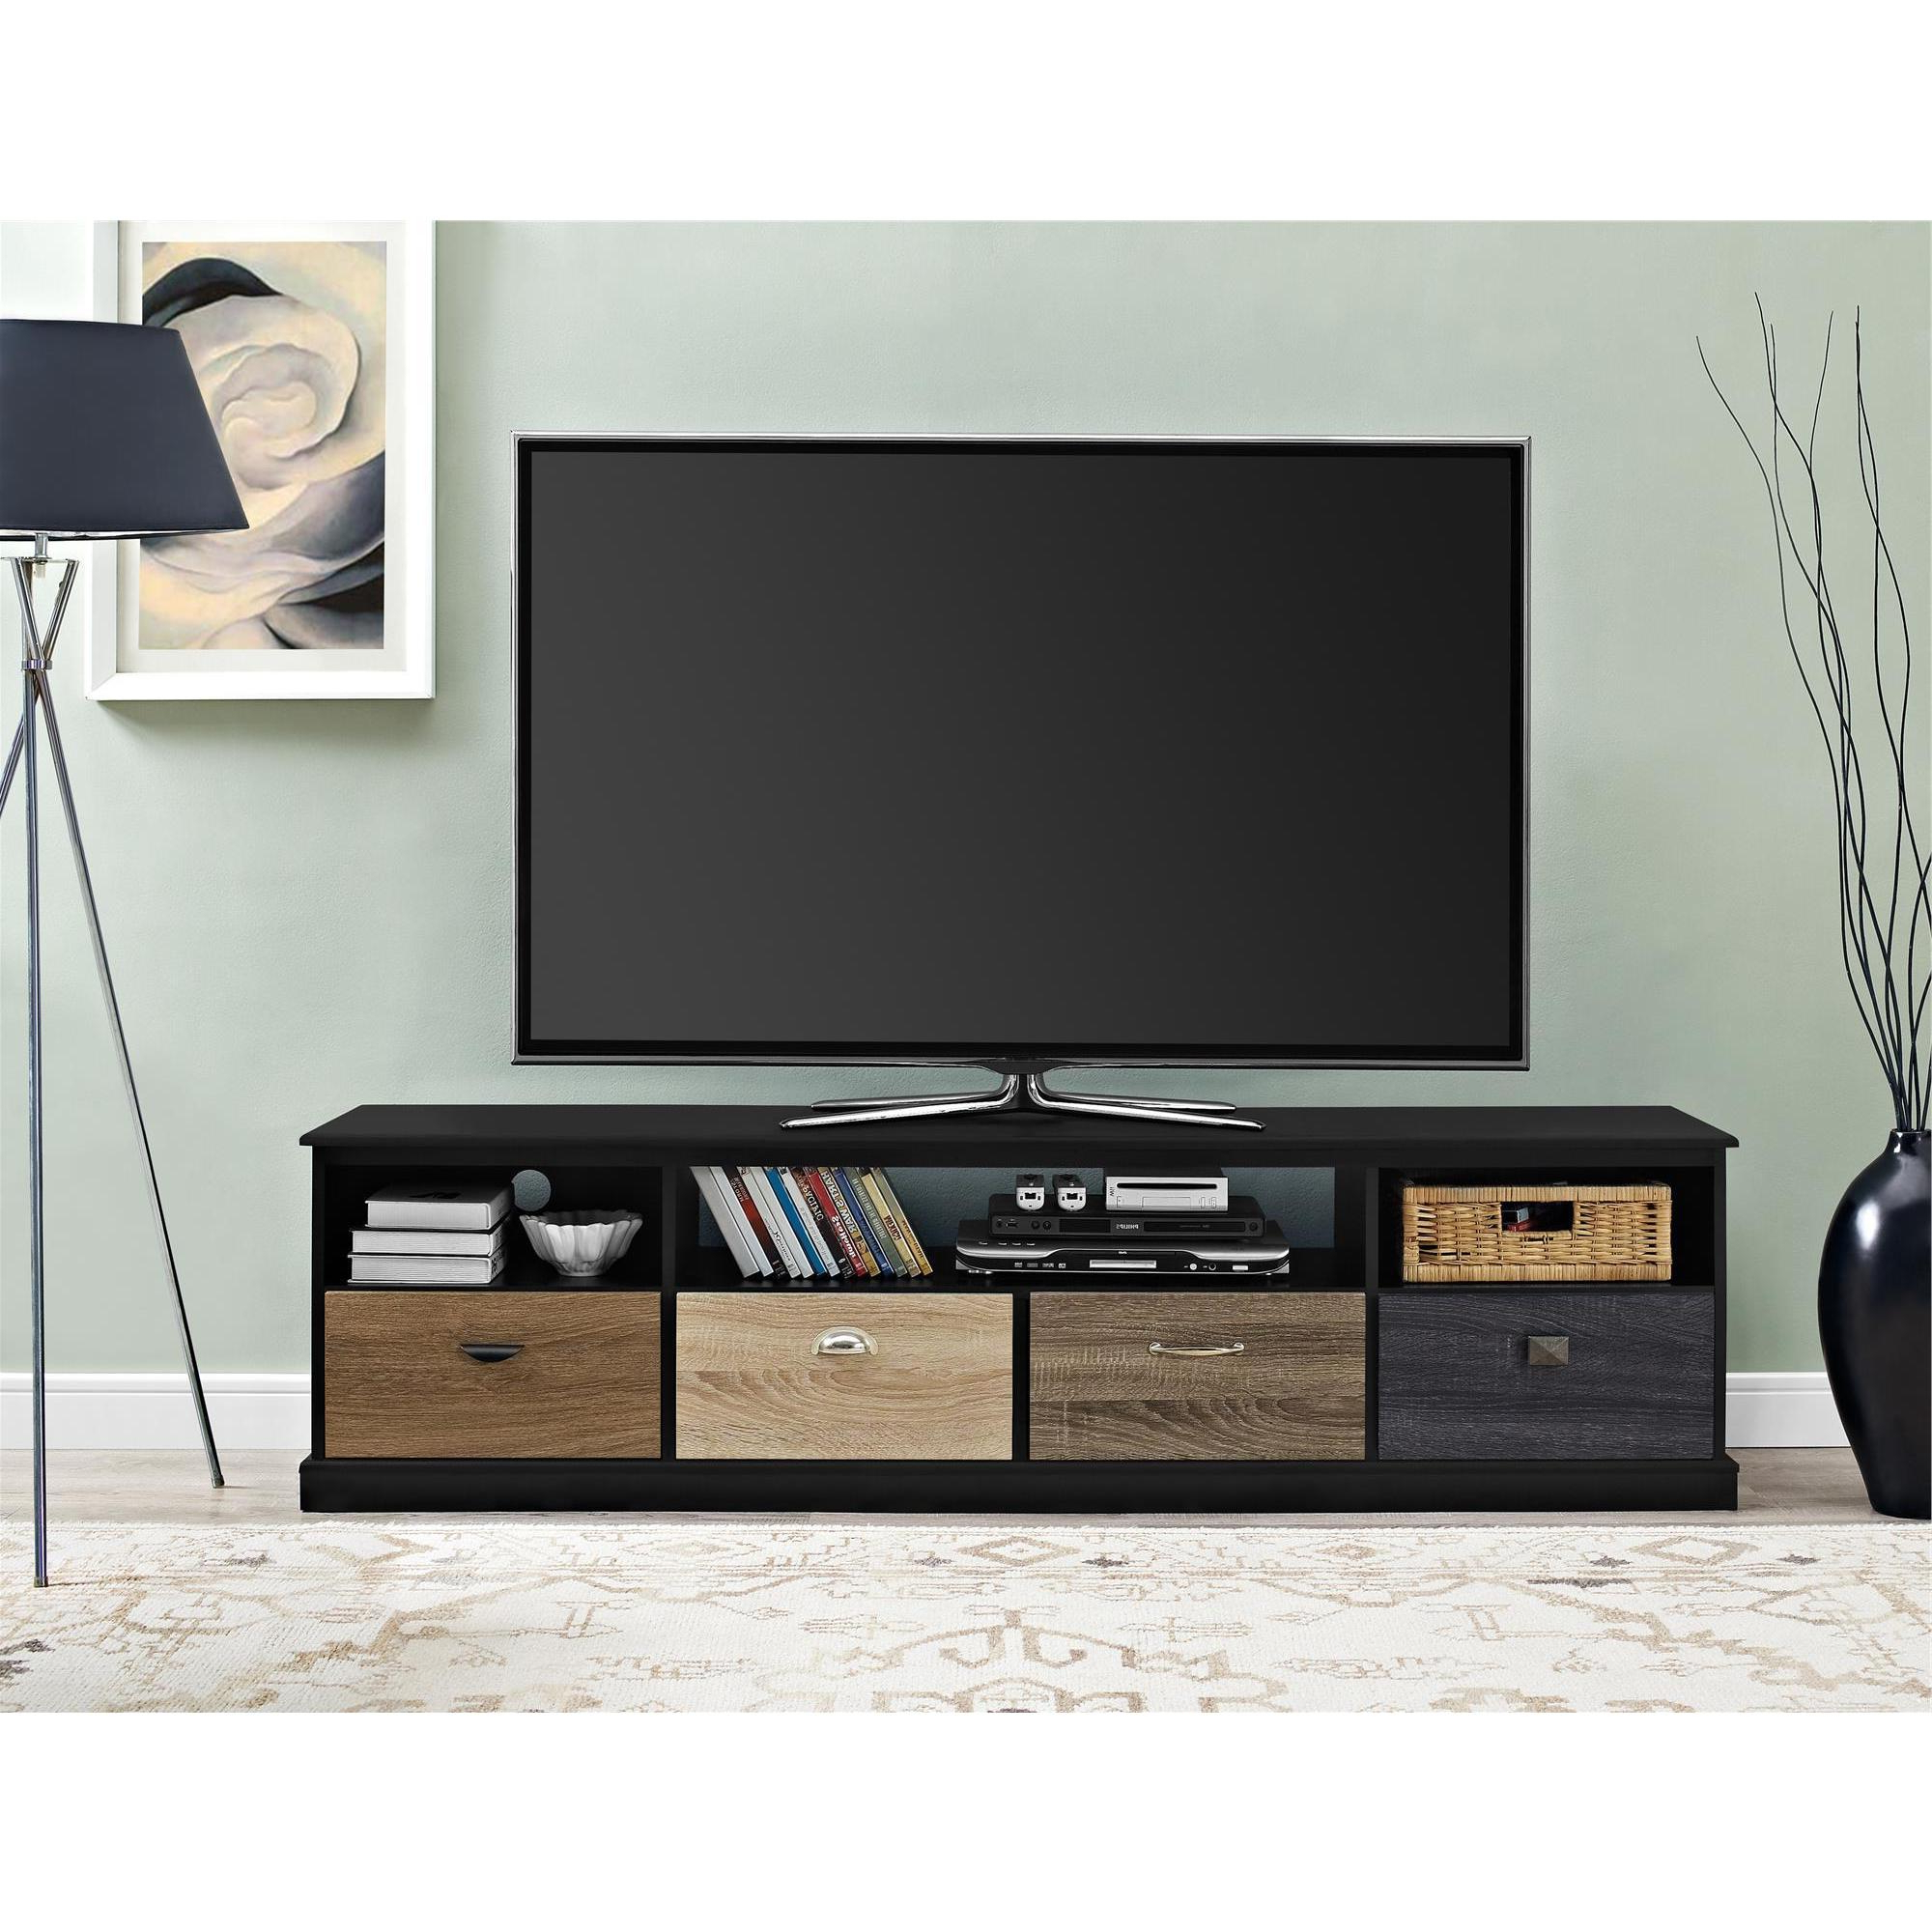 Shop Avenue Greene Mercer 65 Inch Black Tv Console With Multicolored Inside Kilian Grey 49 Inch Tv Stands (Gallery 1 of 20)